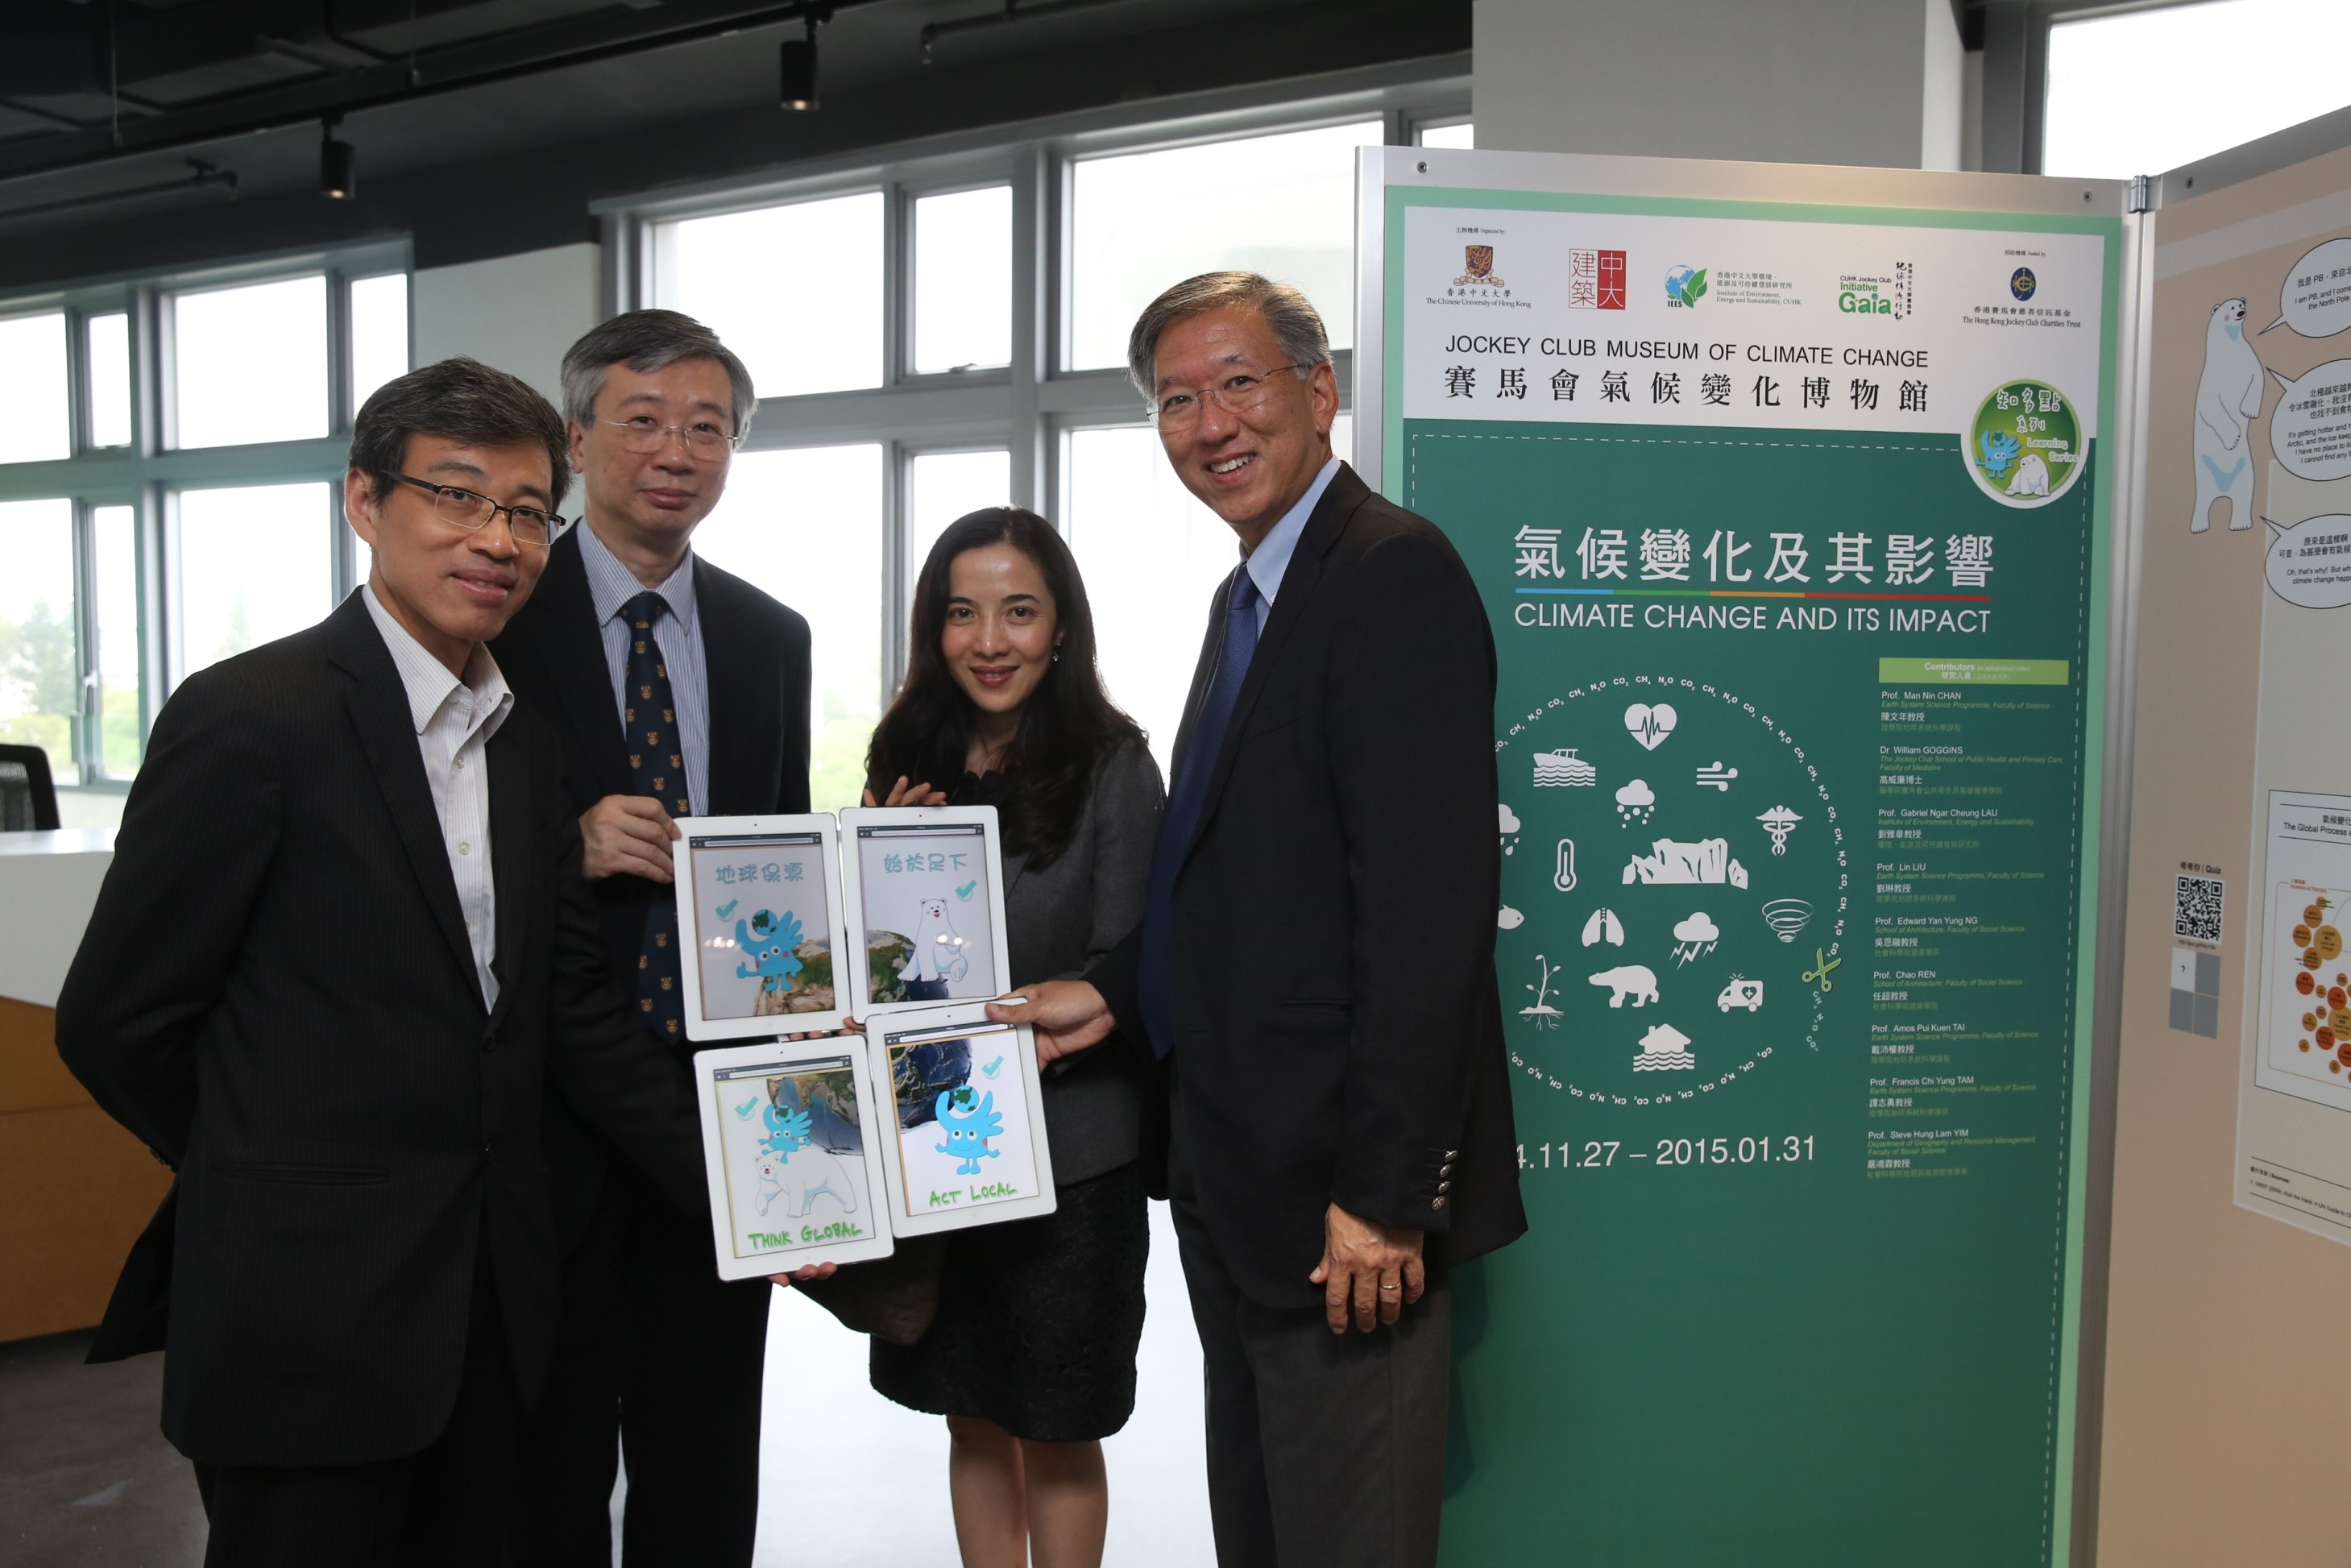 (From left) Mr Pak-shing Tai, Prof Tung Fung, Ms Shirley Fisher and Prof Nelson Chen officiate at the opening ceremony of 'Climate Change and Its Impact' exhibition.